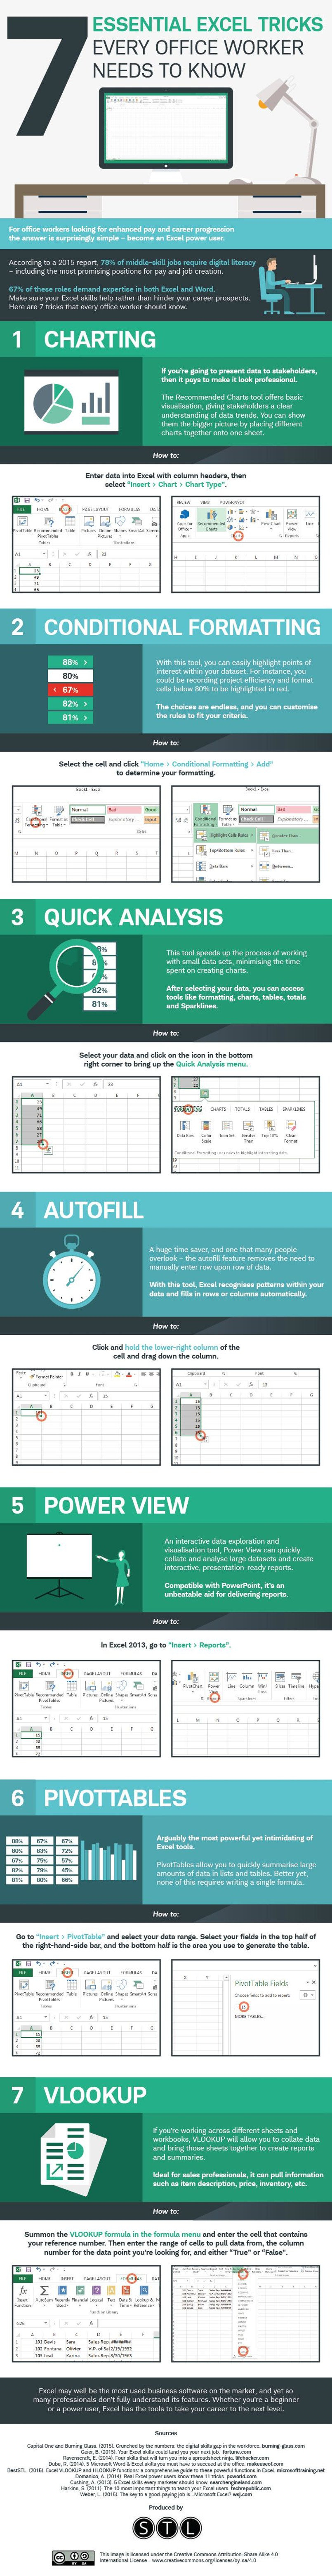 Spreadsheet Guru Within 7 Tips To Become A Microsoft Excel Spreadsheet Guru [Infographic